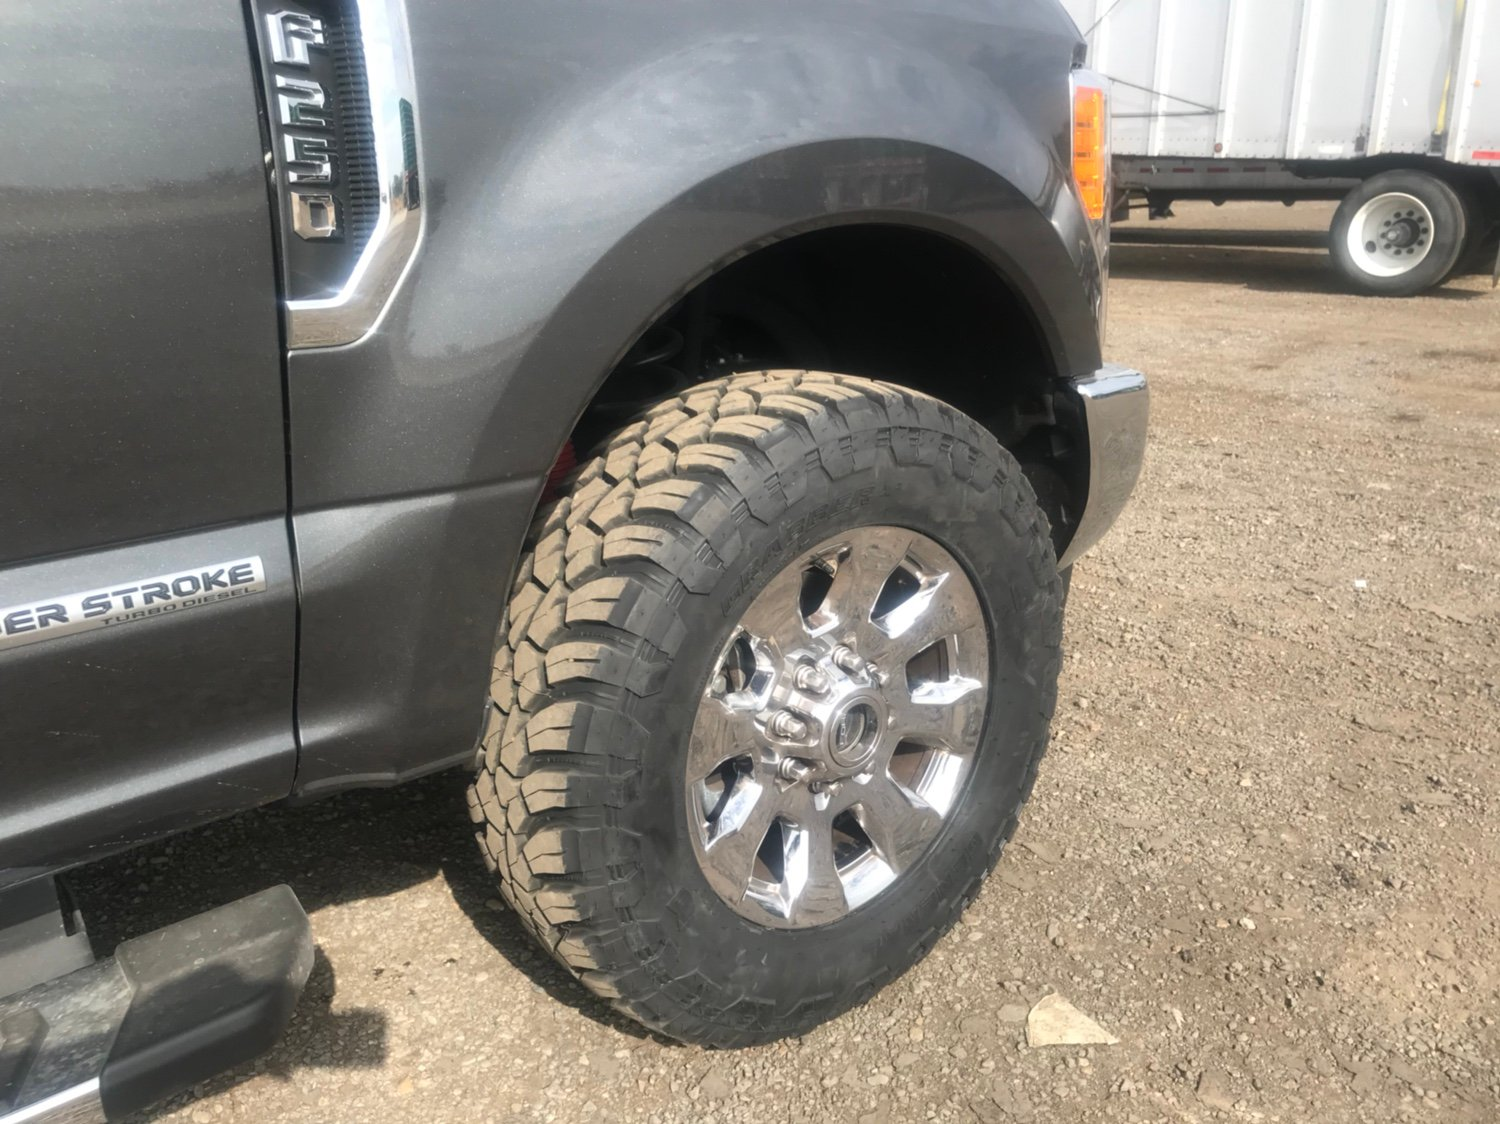 tires 295 wheels factory 65 general trail larger powerstroke f250 65r20 ford grabber x3 height running forum diesel